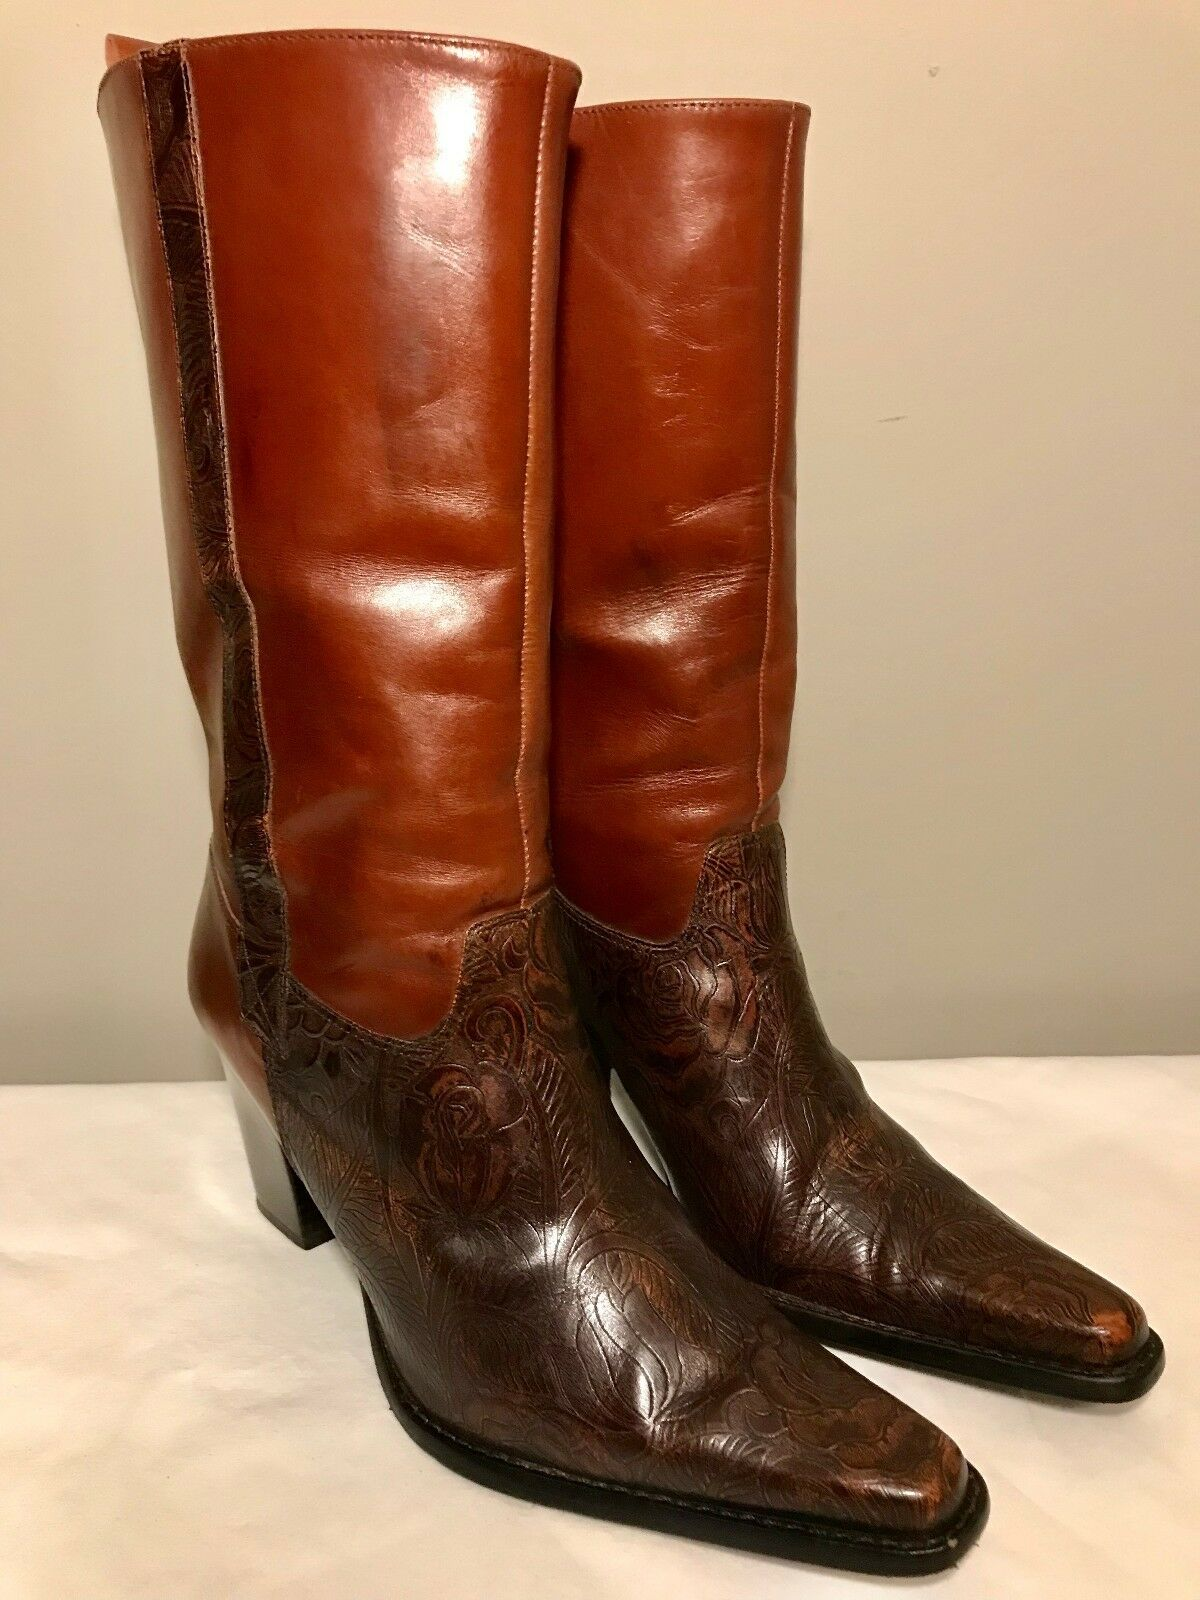 Antonio Melani Dress Cowboy Stiefel Braun Leder Tooled Design High Heels 175